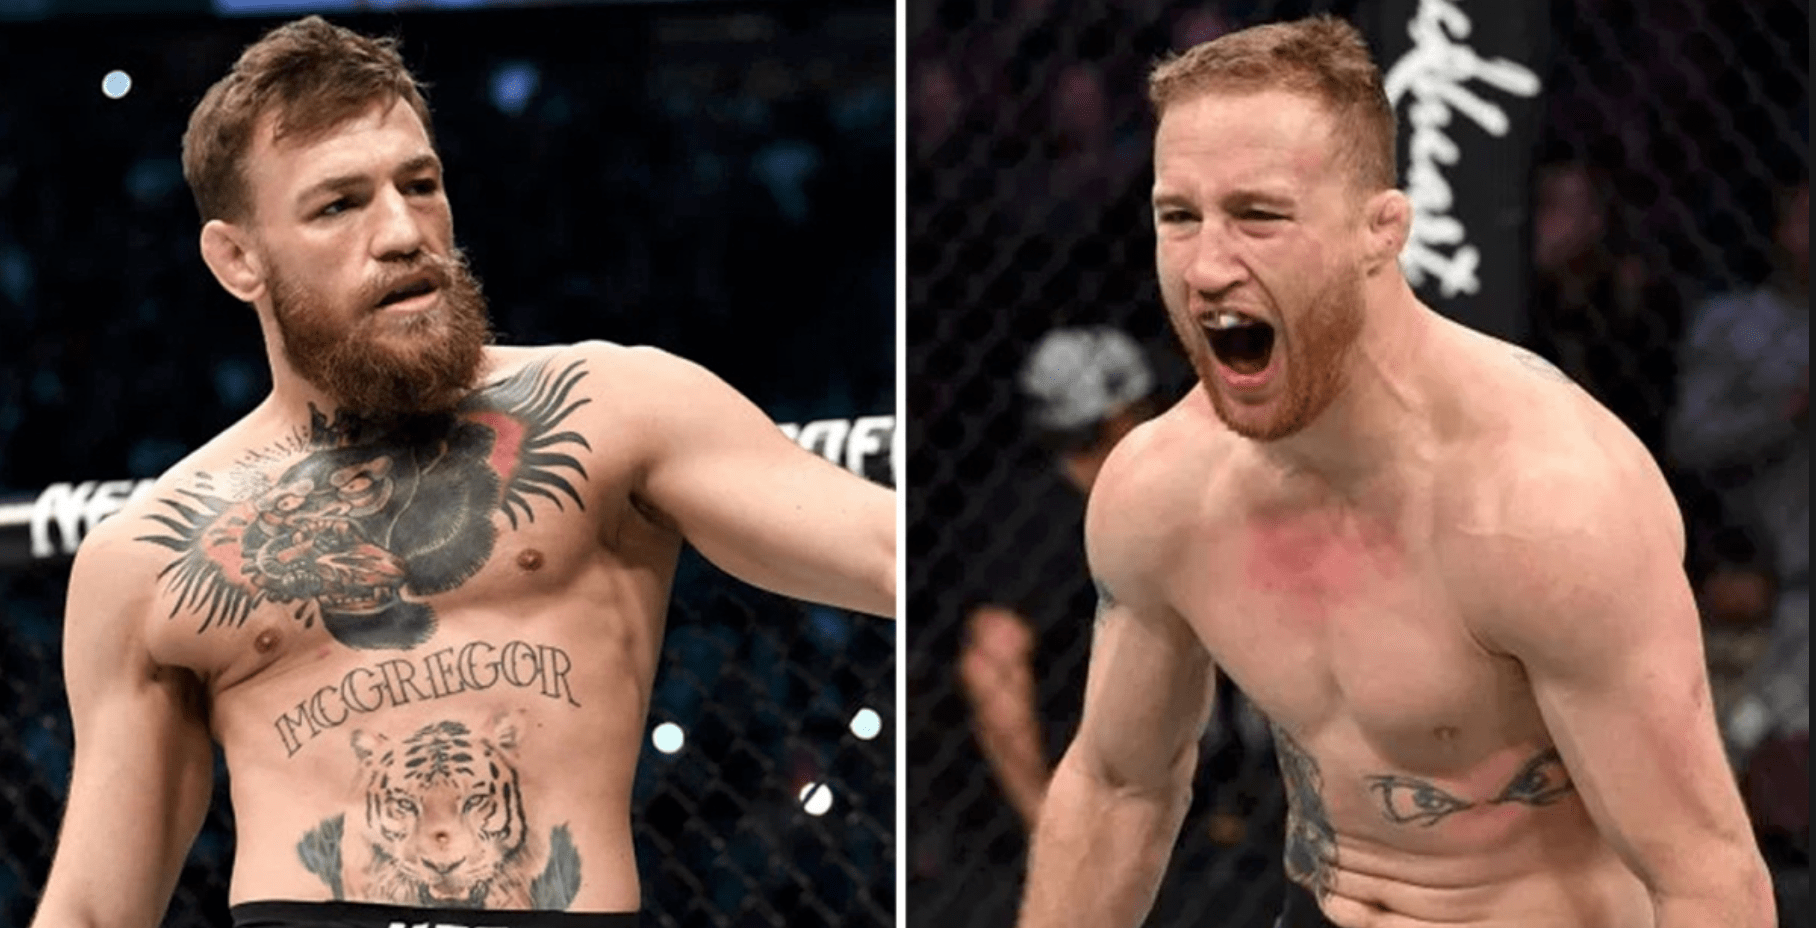 Justin Gaethje Says McGregor Will Be 'Another Ronda Rousey Story'